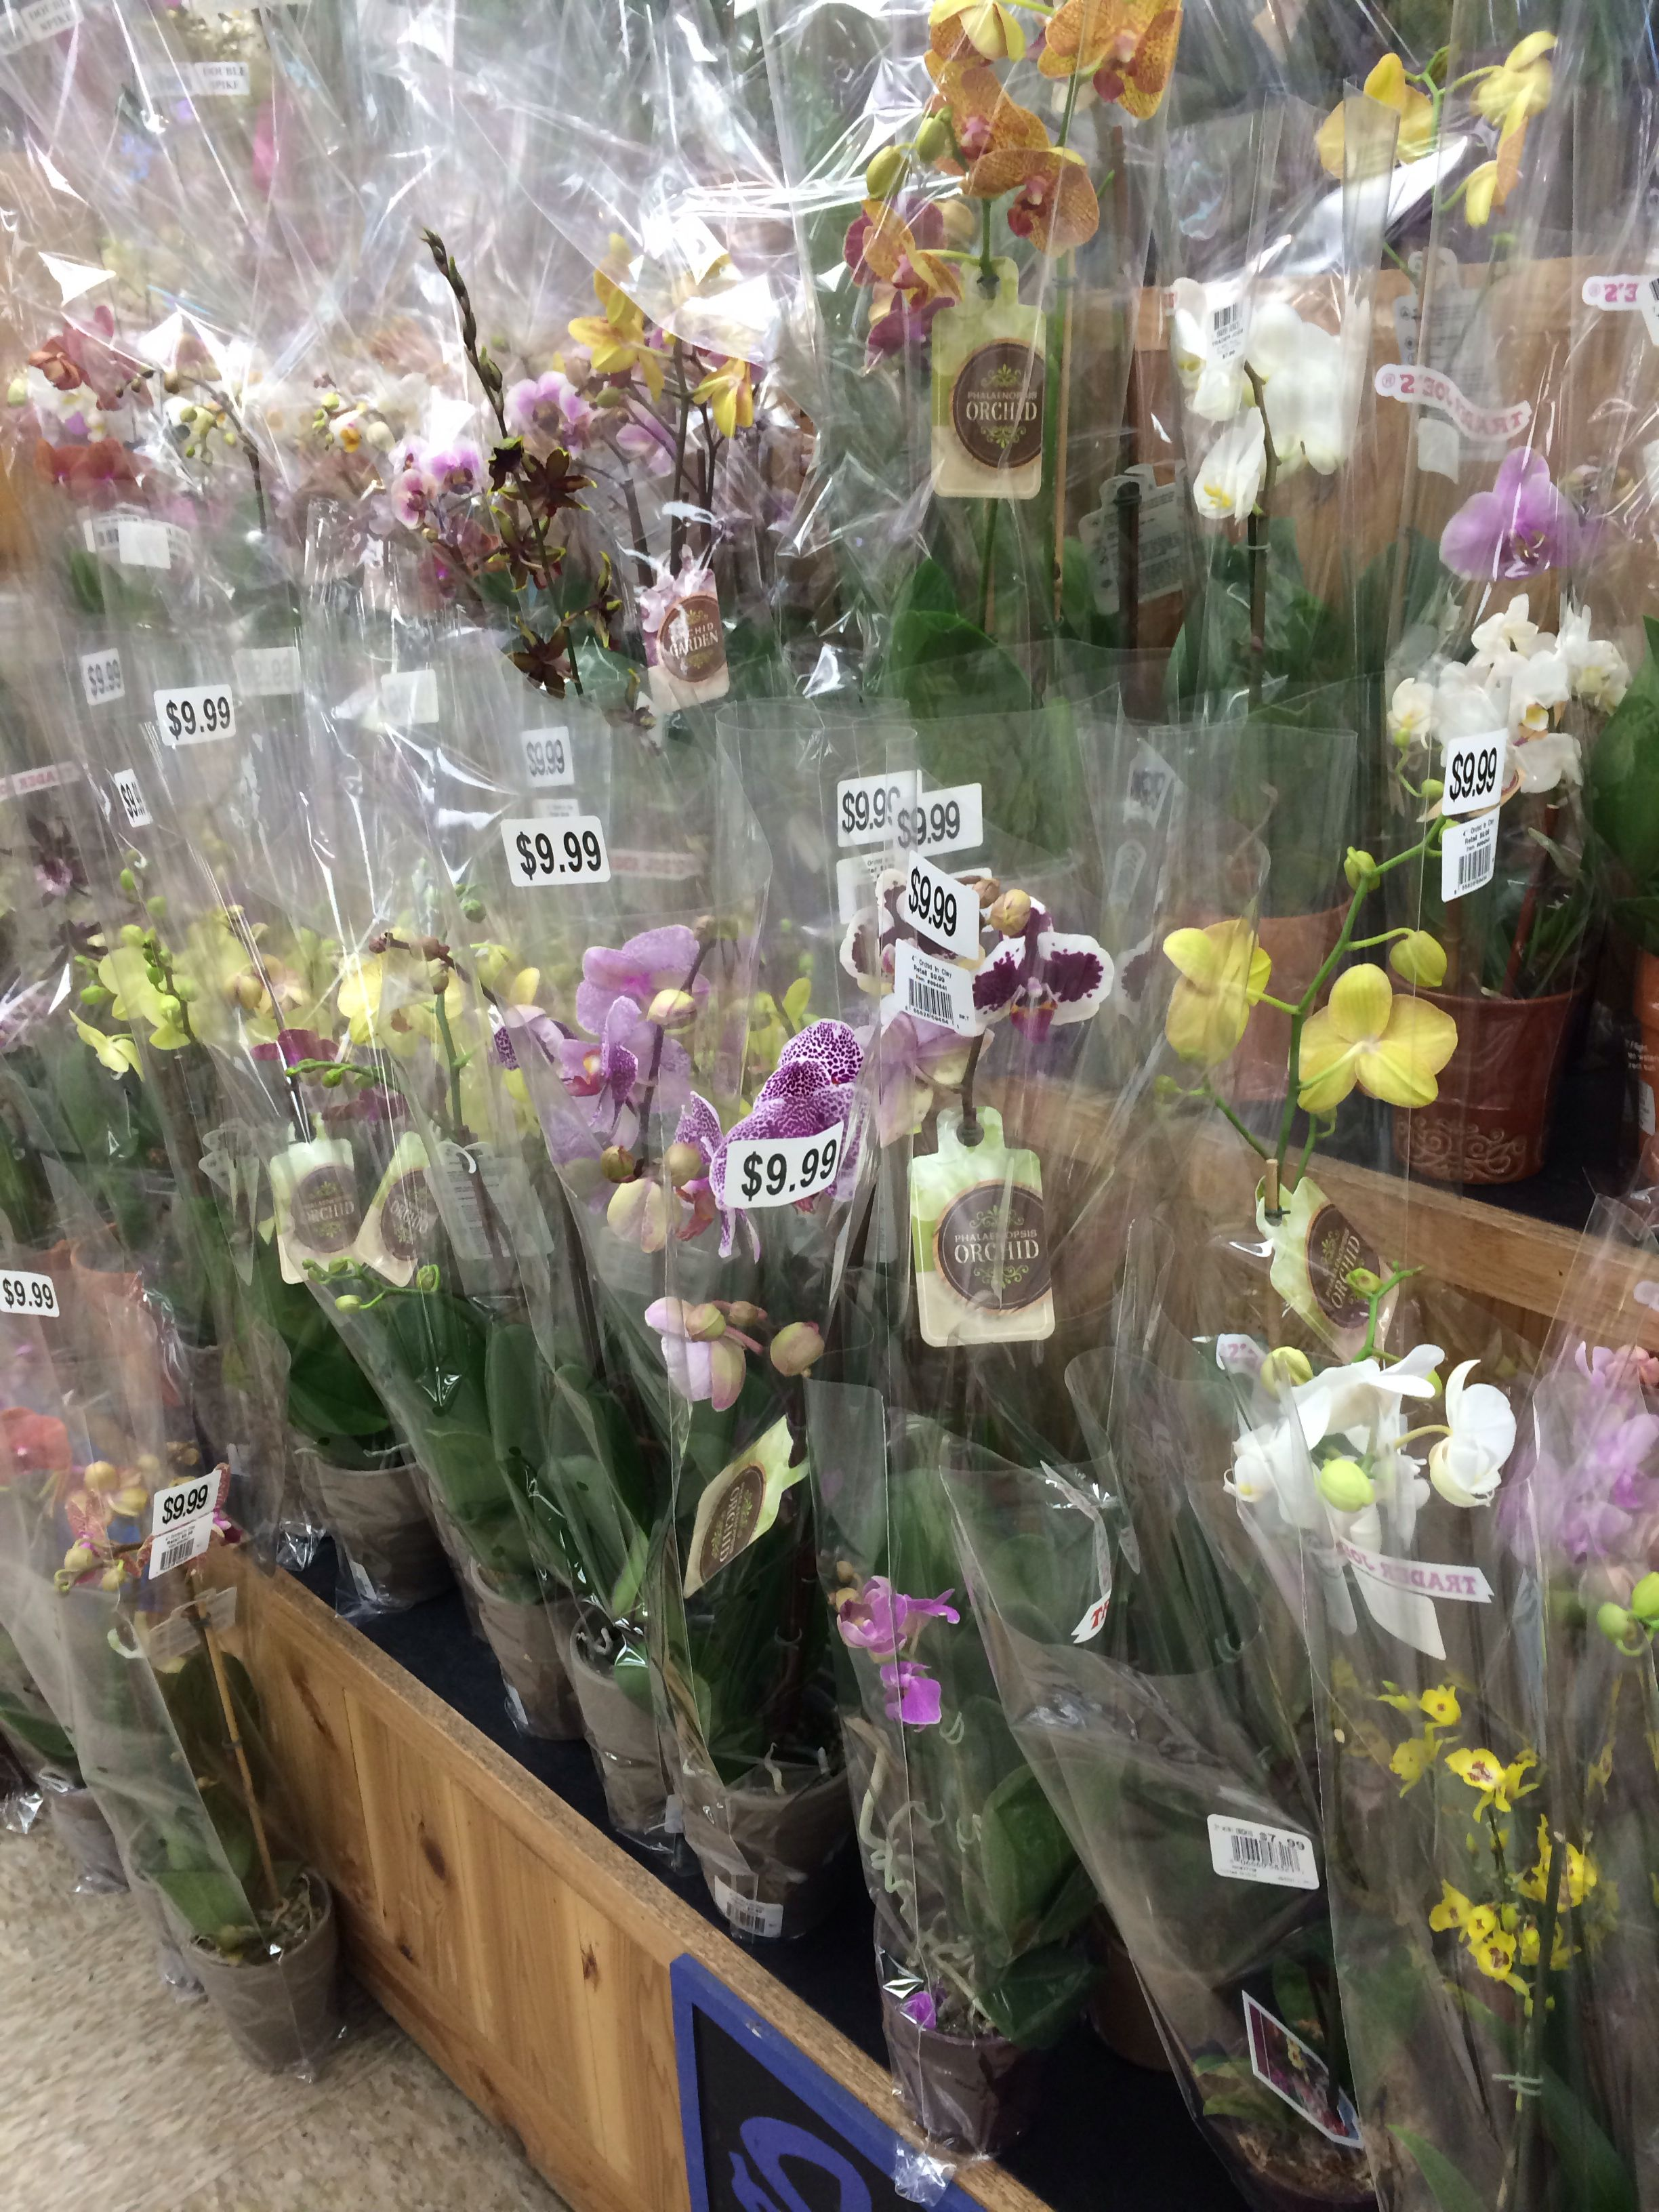 Trader Joe's Orchids Price : trader, joe's, orchids, price, Orchid, Trader